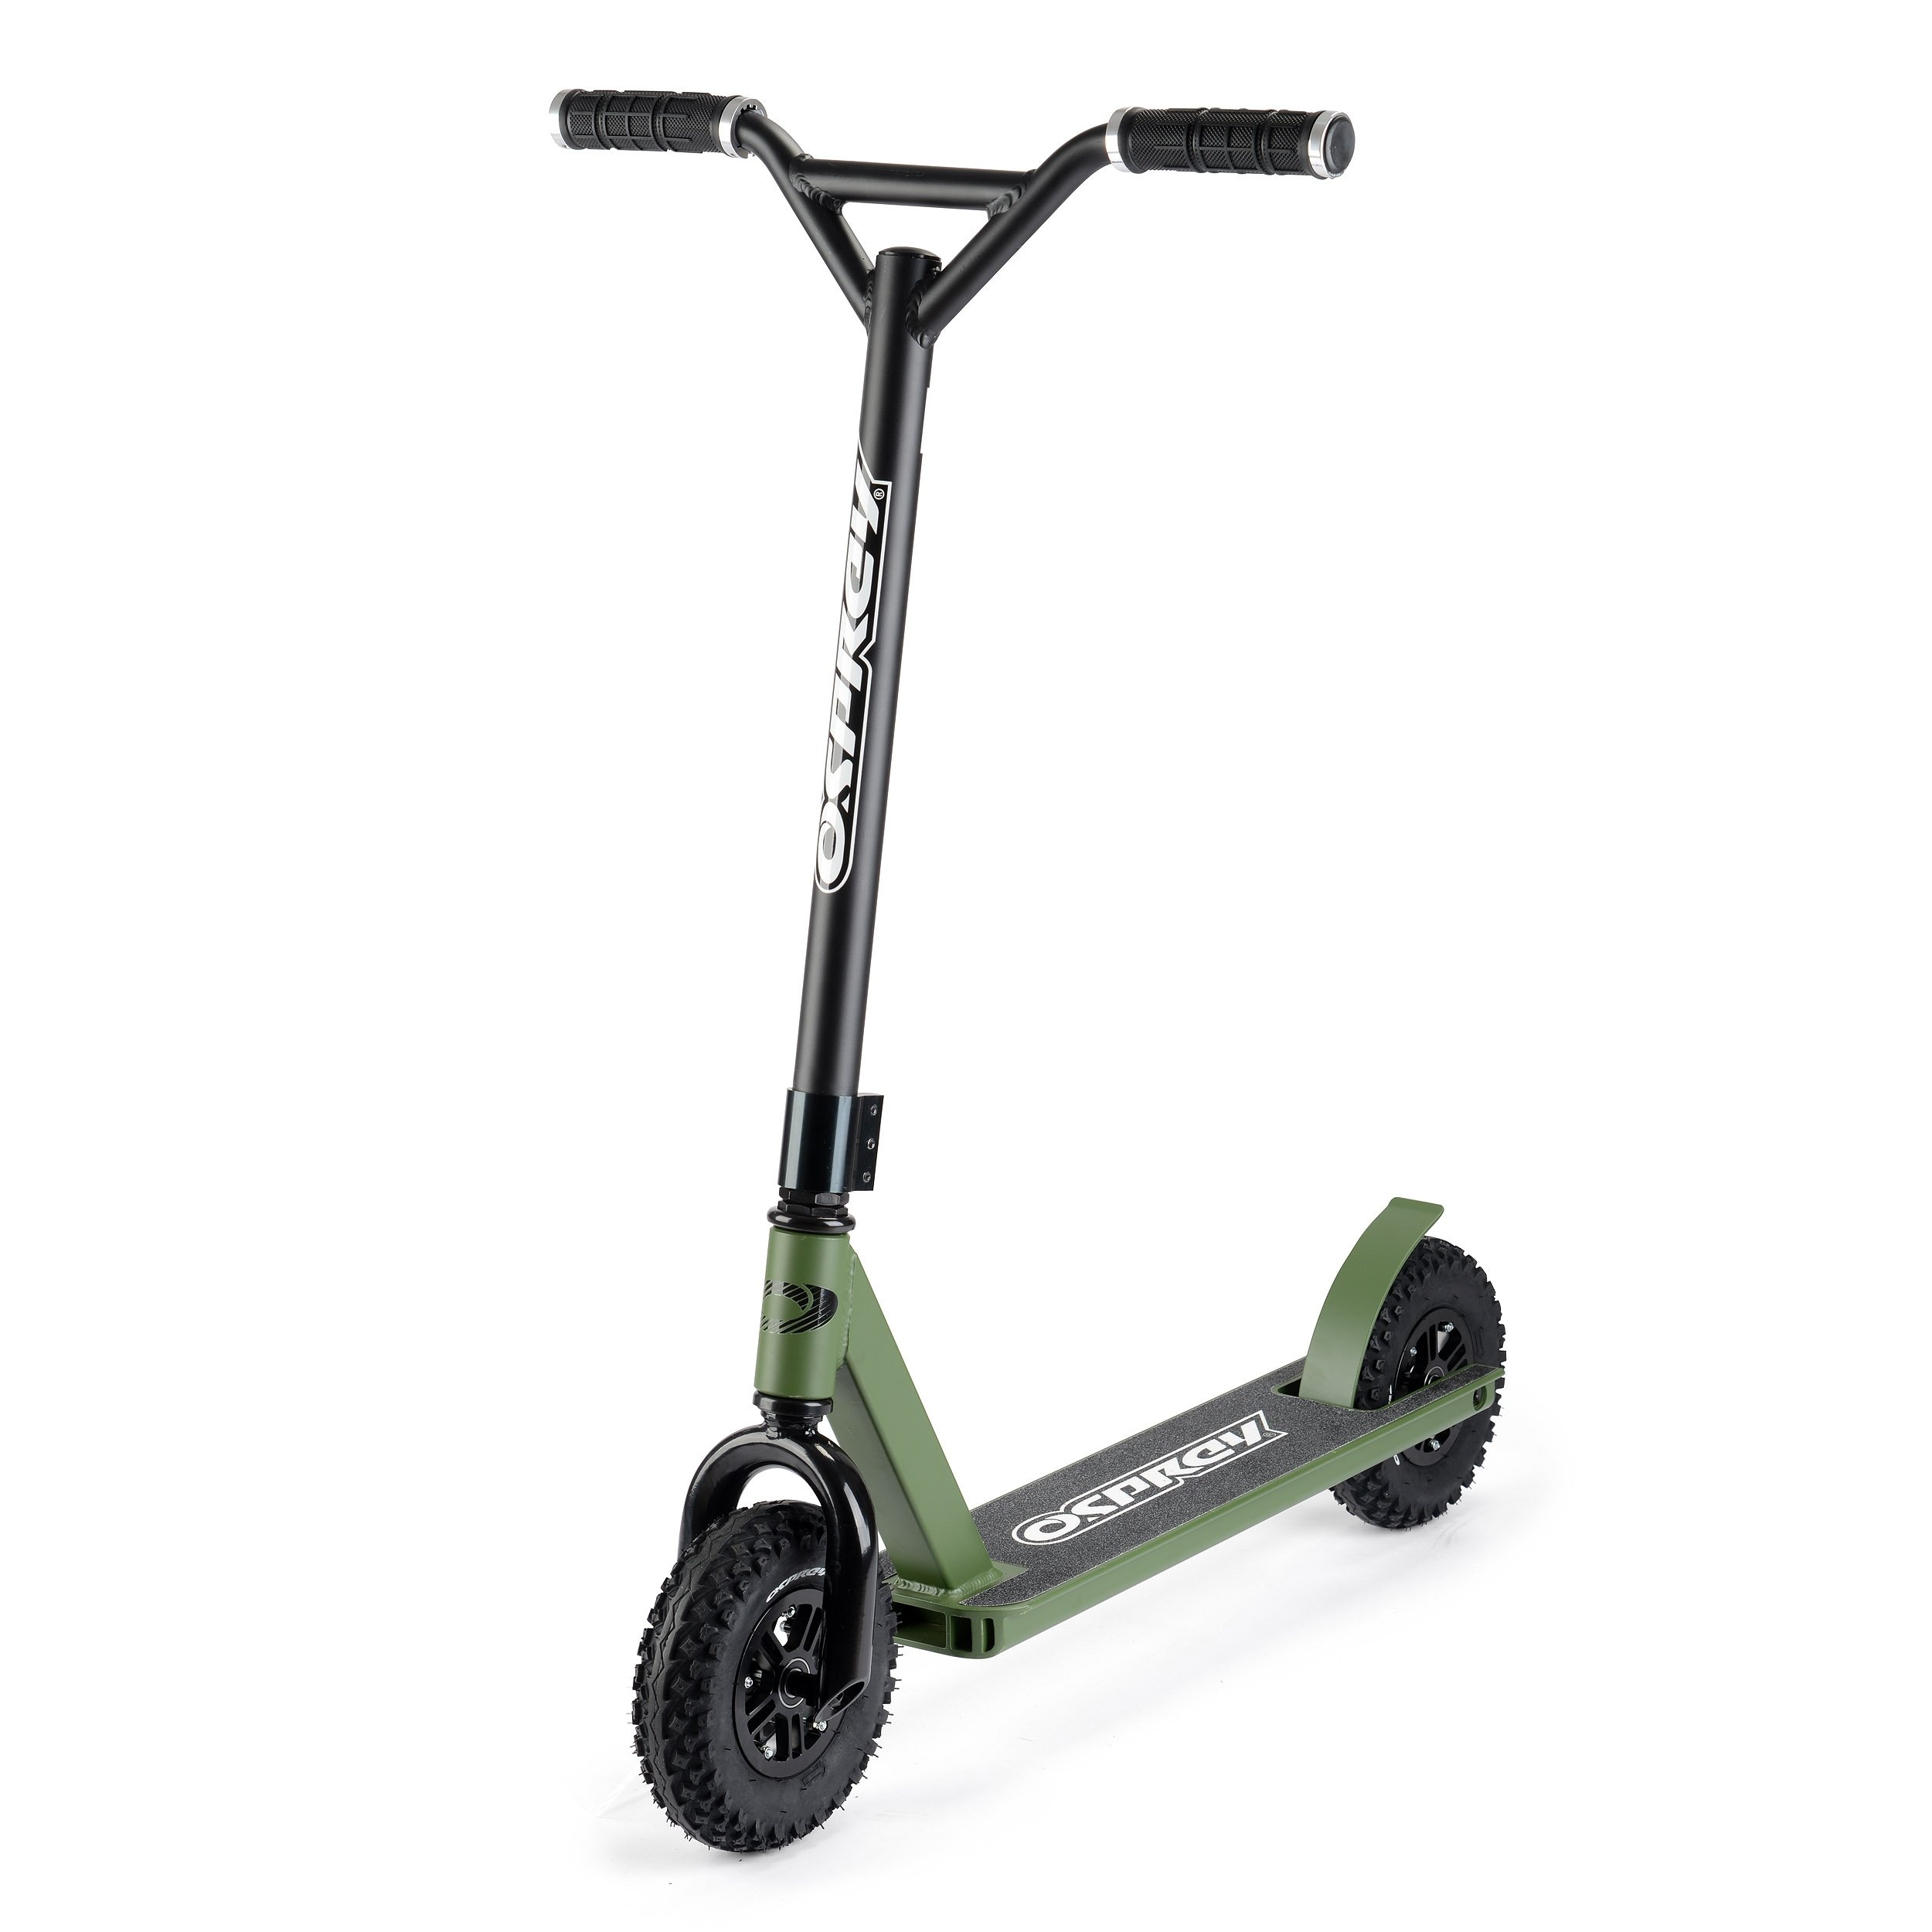 Osprey Dirt Scooter with Off Road All Terrain Pneumatic Trail Tires - NATO Green - Offroad Scooter for Adults or Kids